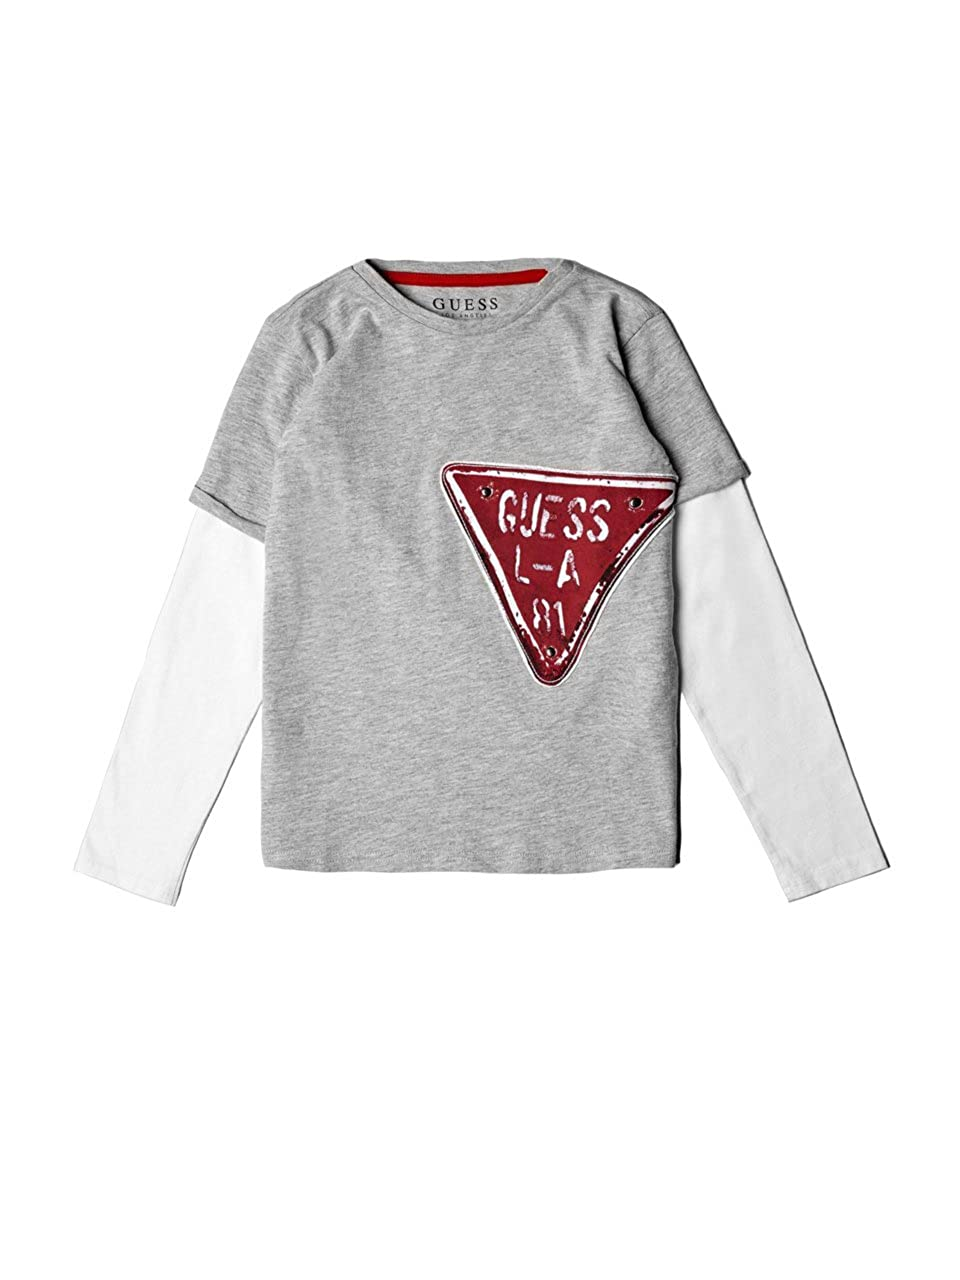 GUESS Boys Long Sleeve Layered Graphic T-Shirt